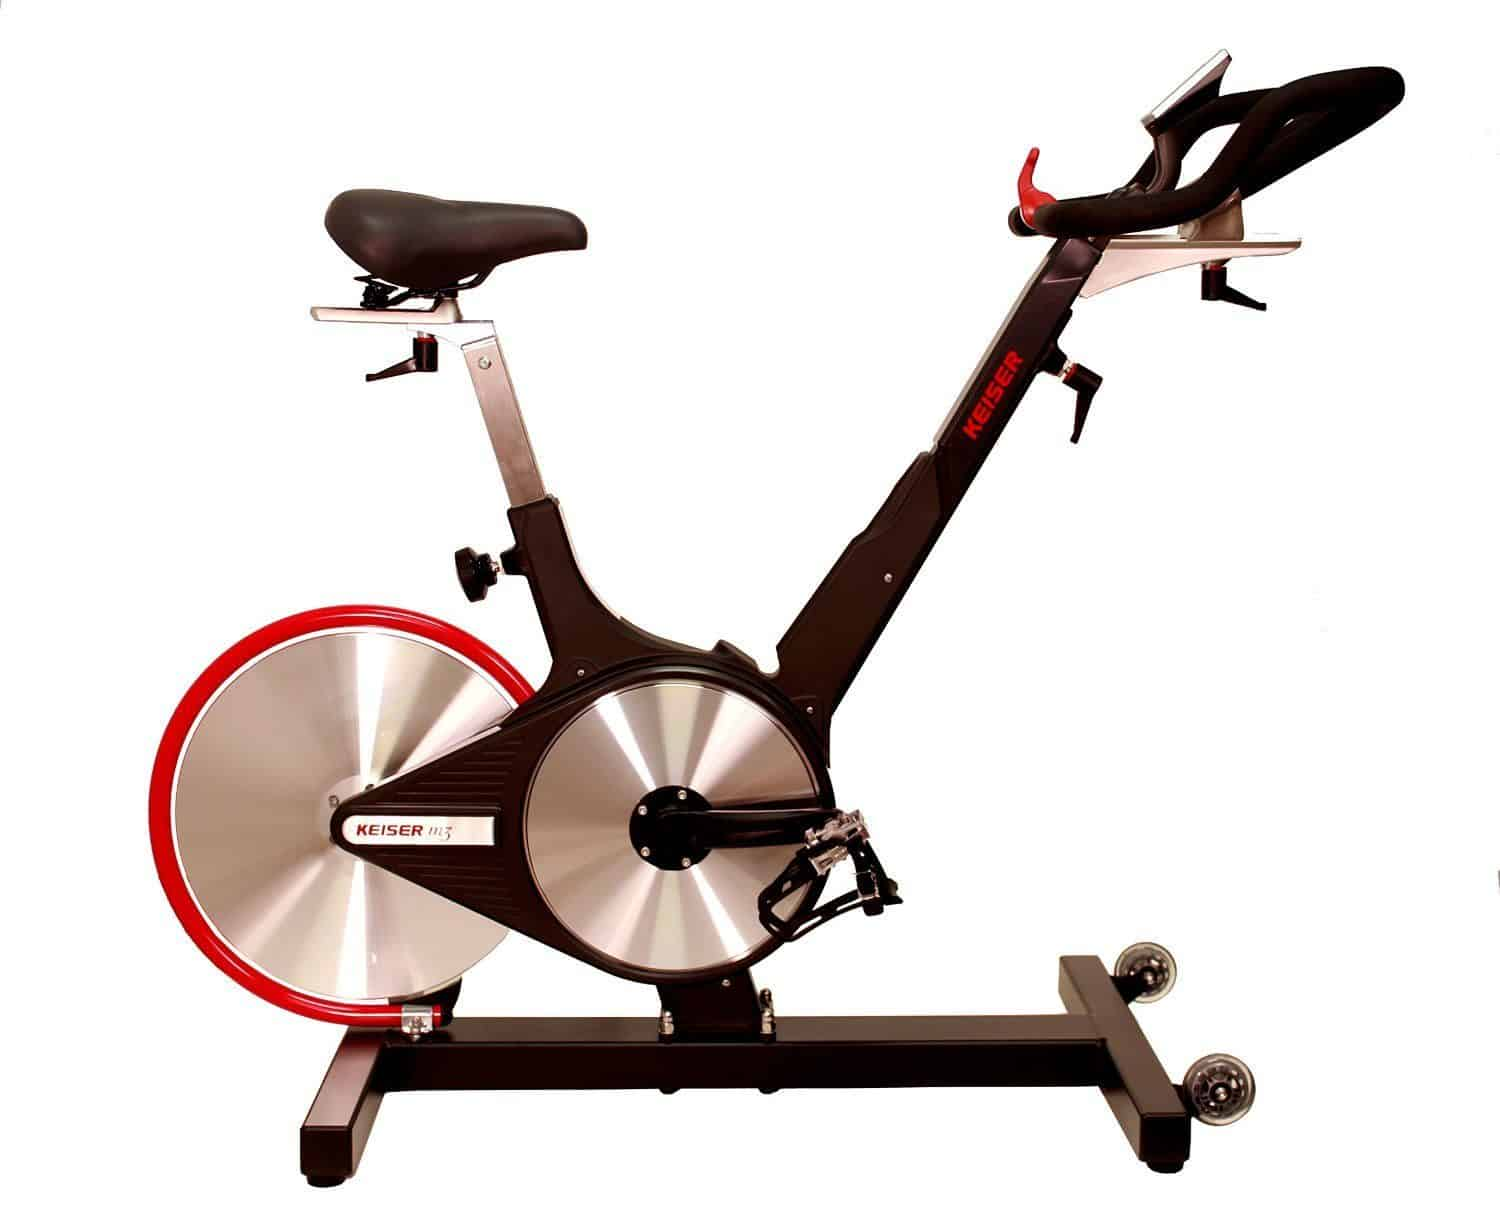 Keiser Spin Bike Top Rated Indoor Cycling Trainer Review